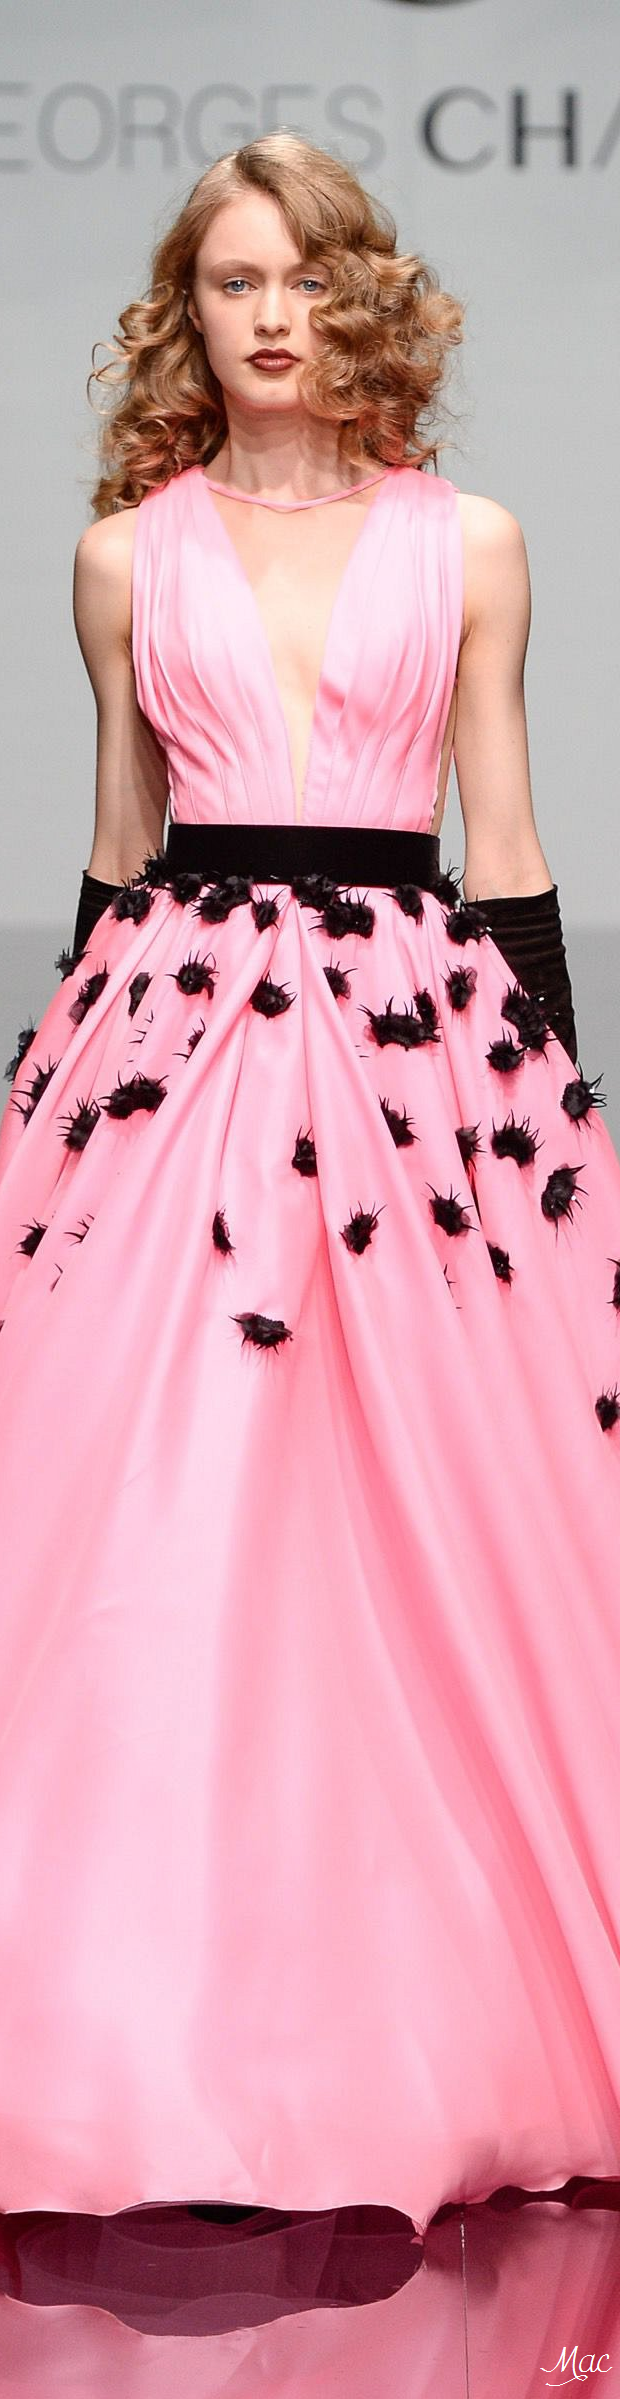 Georges Chakra ~ Fall 2016 Haute Couture Pink Gown | HAUTE COUTURE ...